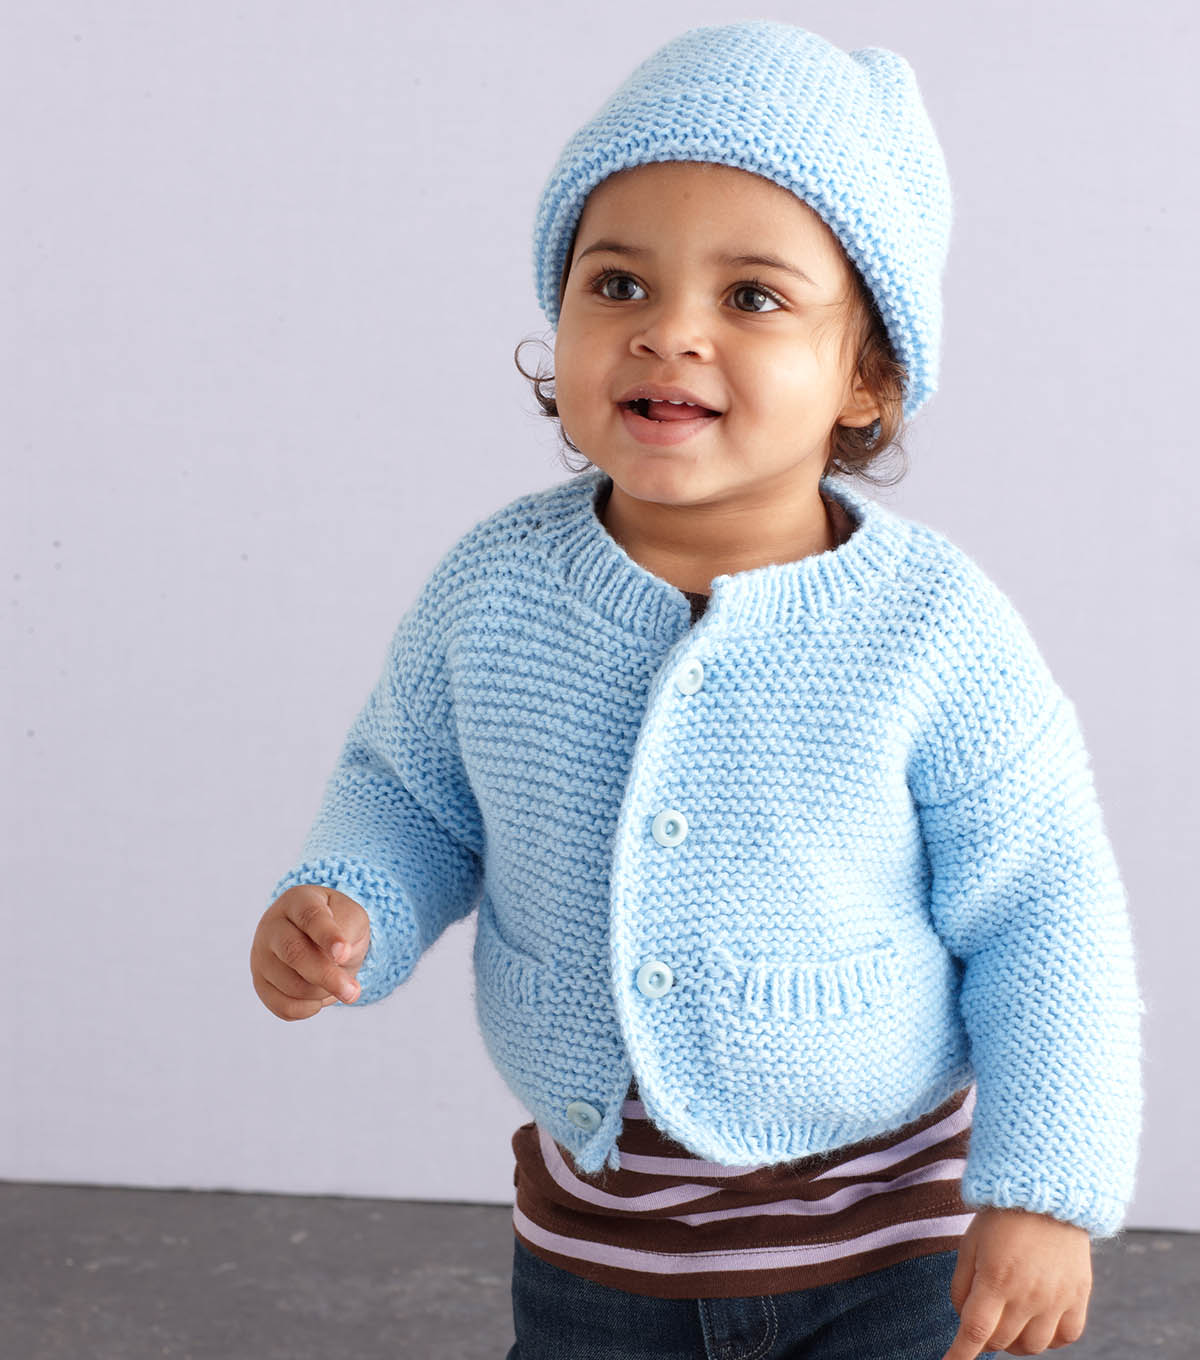 Knit A Simple Style Baby Cardigan and Hat Free Pattern ⋆ Knitting Bee